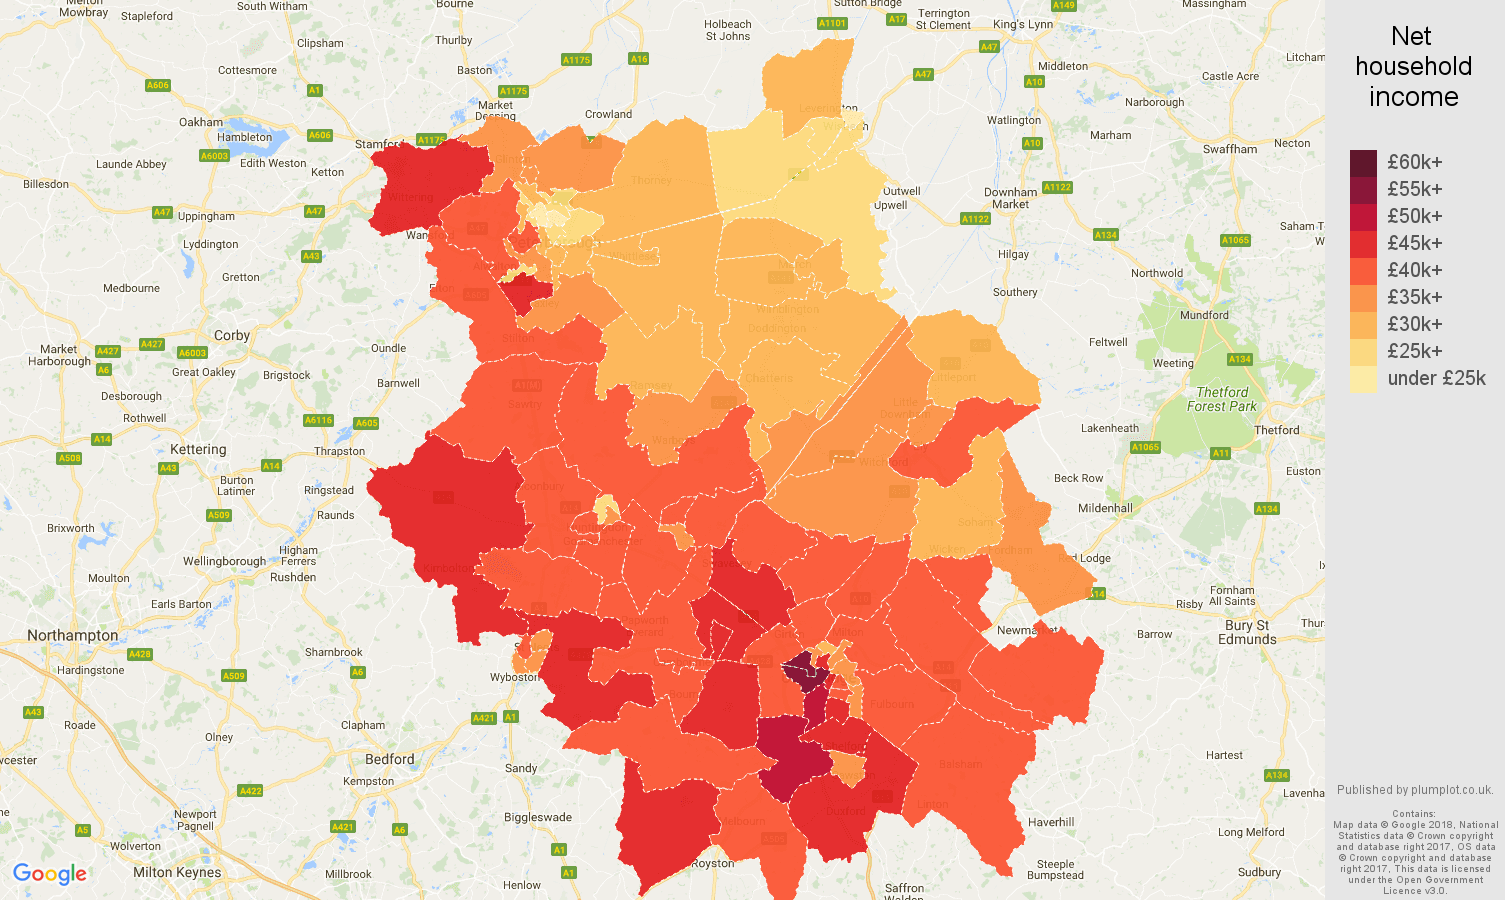 Cambridgeshire net household income map